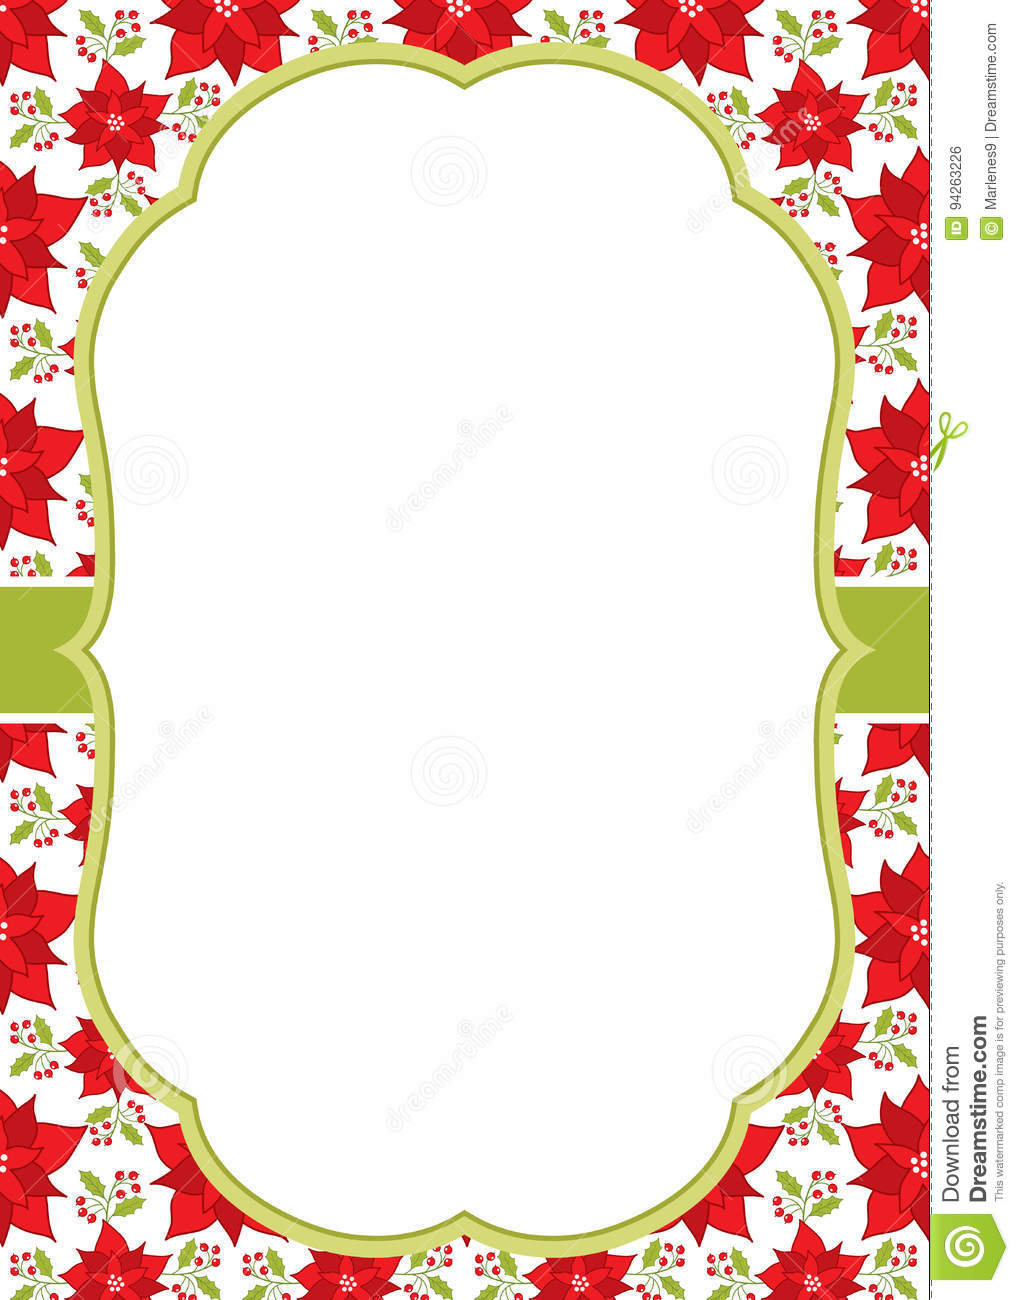 vector christmas and new year greeting card template with a frame on poinsettia background